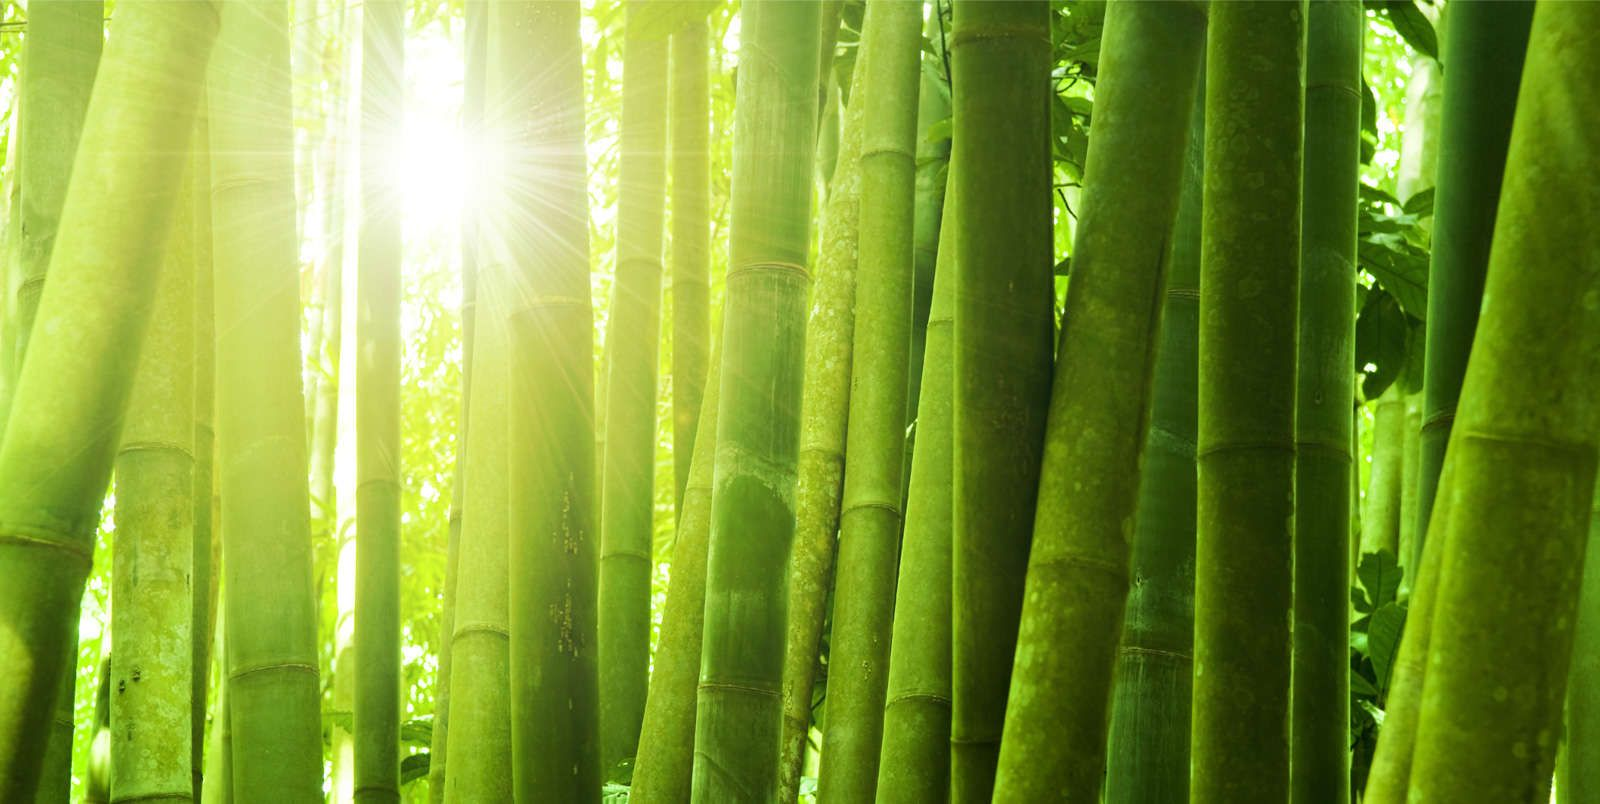 Giant Bamboo Beautiful Pinterest Bambus Tapeten And Bambus Tapete